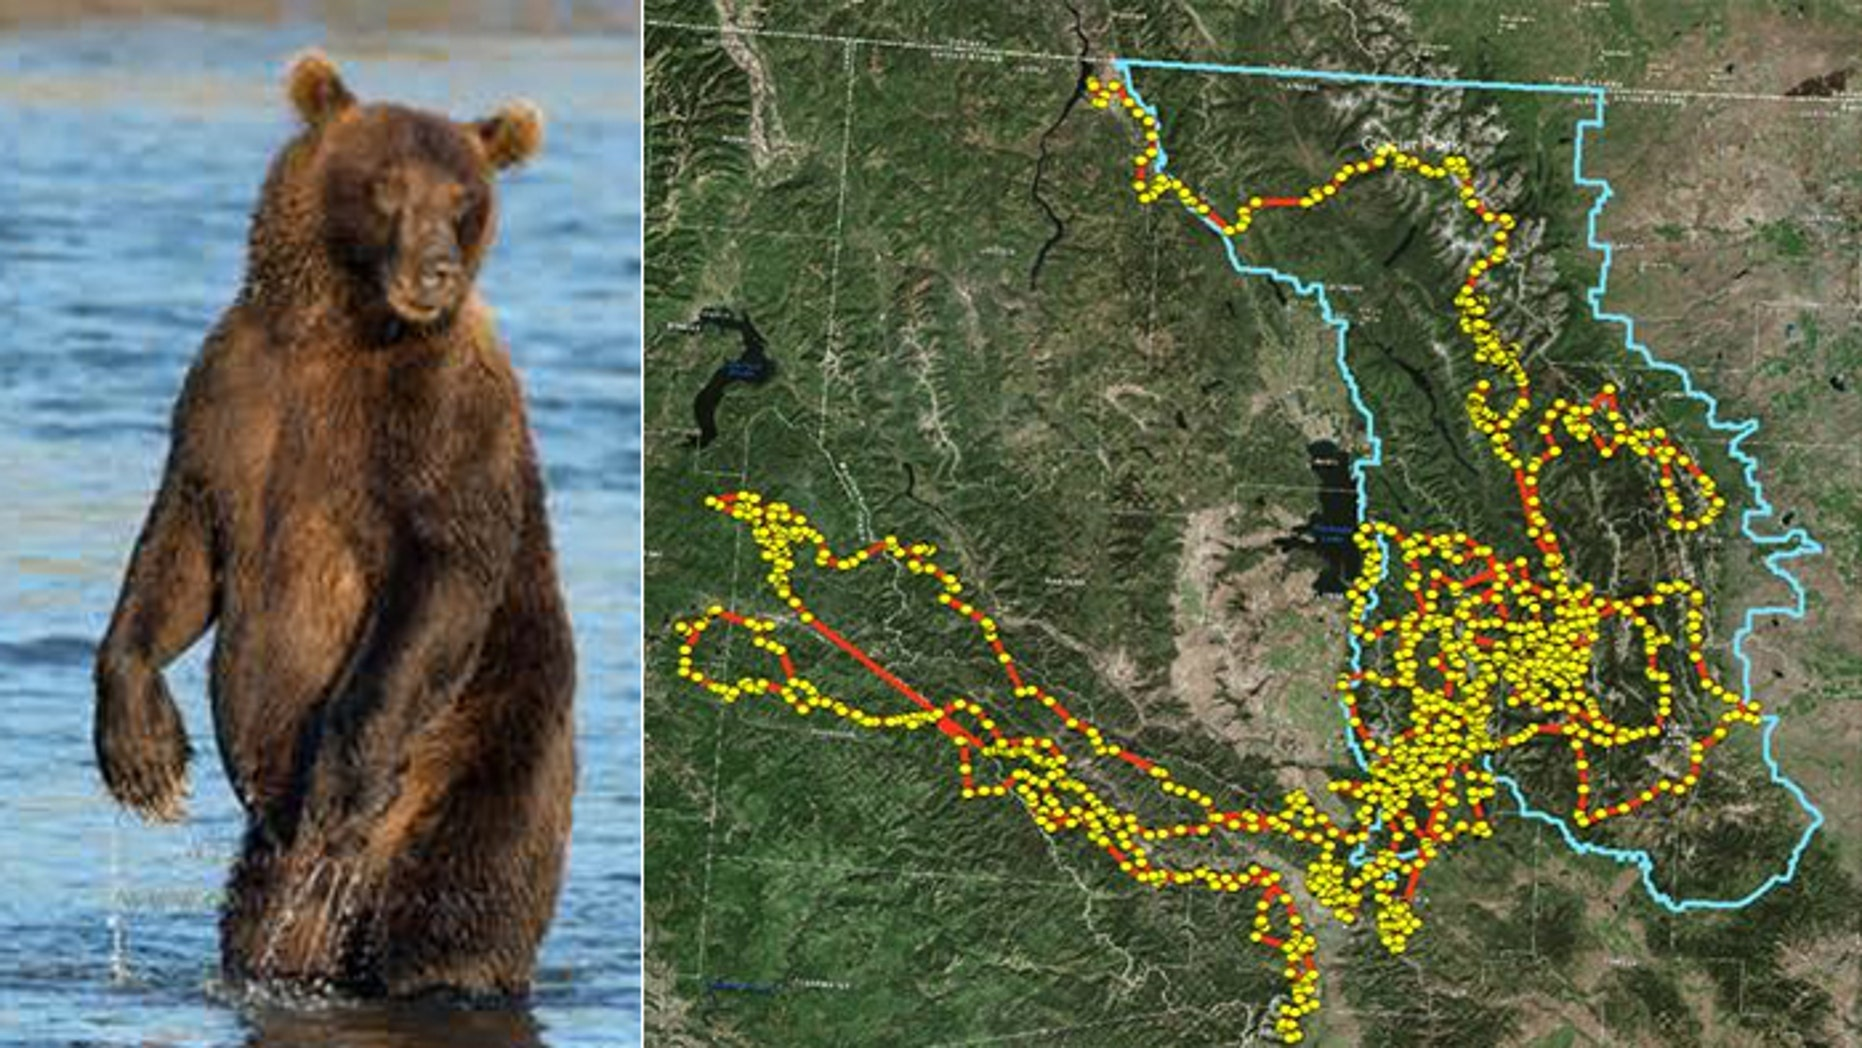 Busy bear: A grizzly like the one pictured rambled 2,800 miles throughout Montana and Idaho, according to conservationists who tracked her.